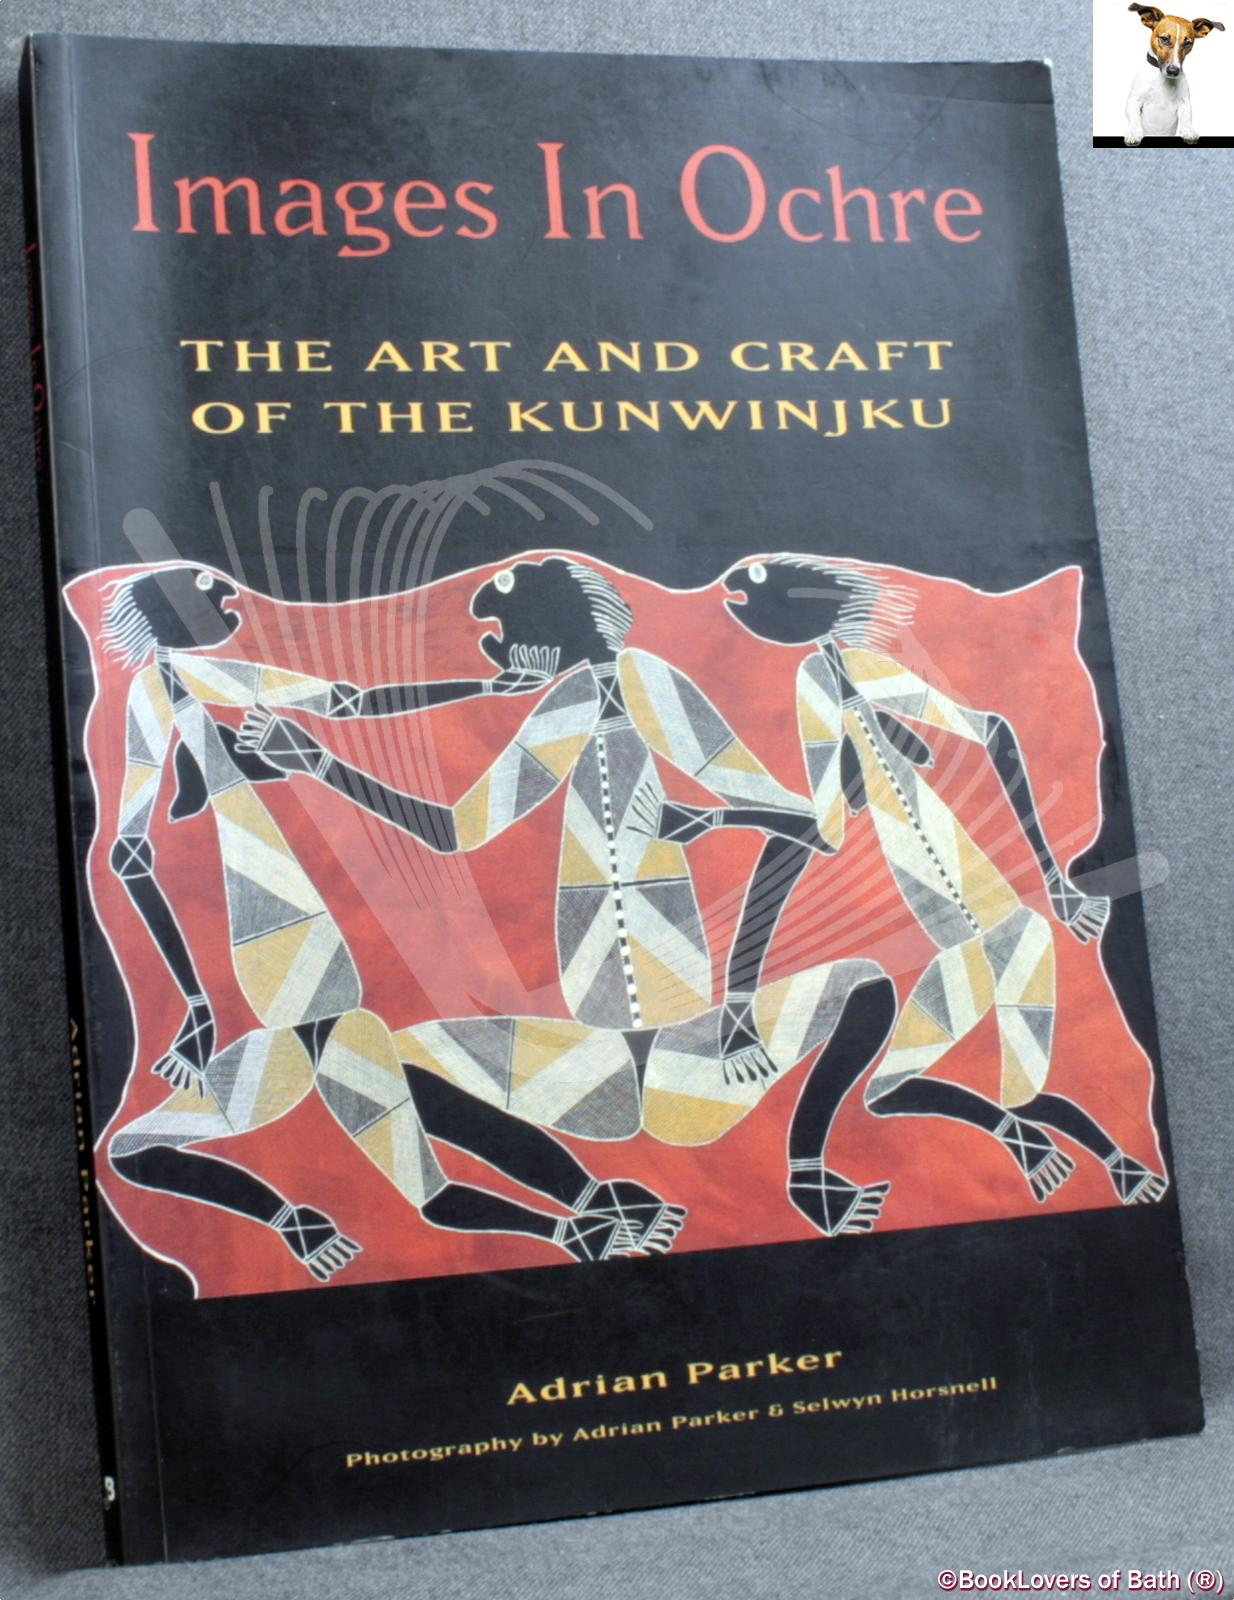 Images in Ochre: The Art and Craft of the Kunwinjku - Adrian Parker